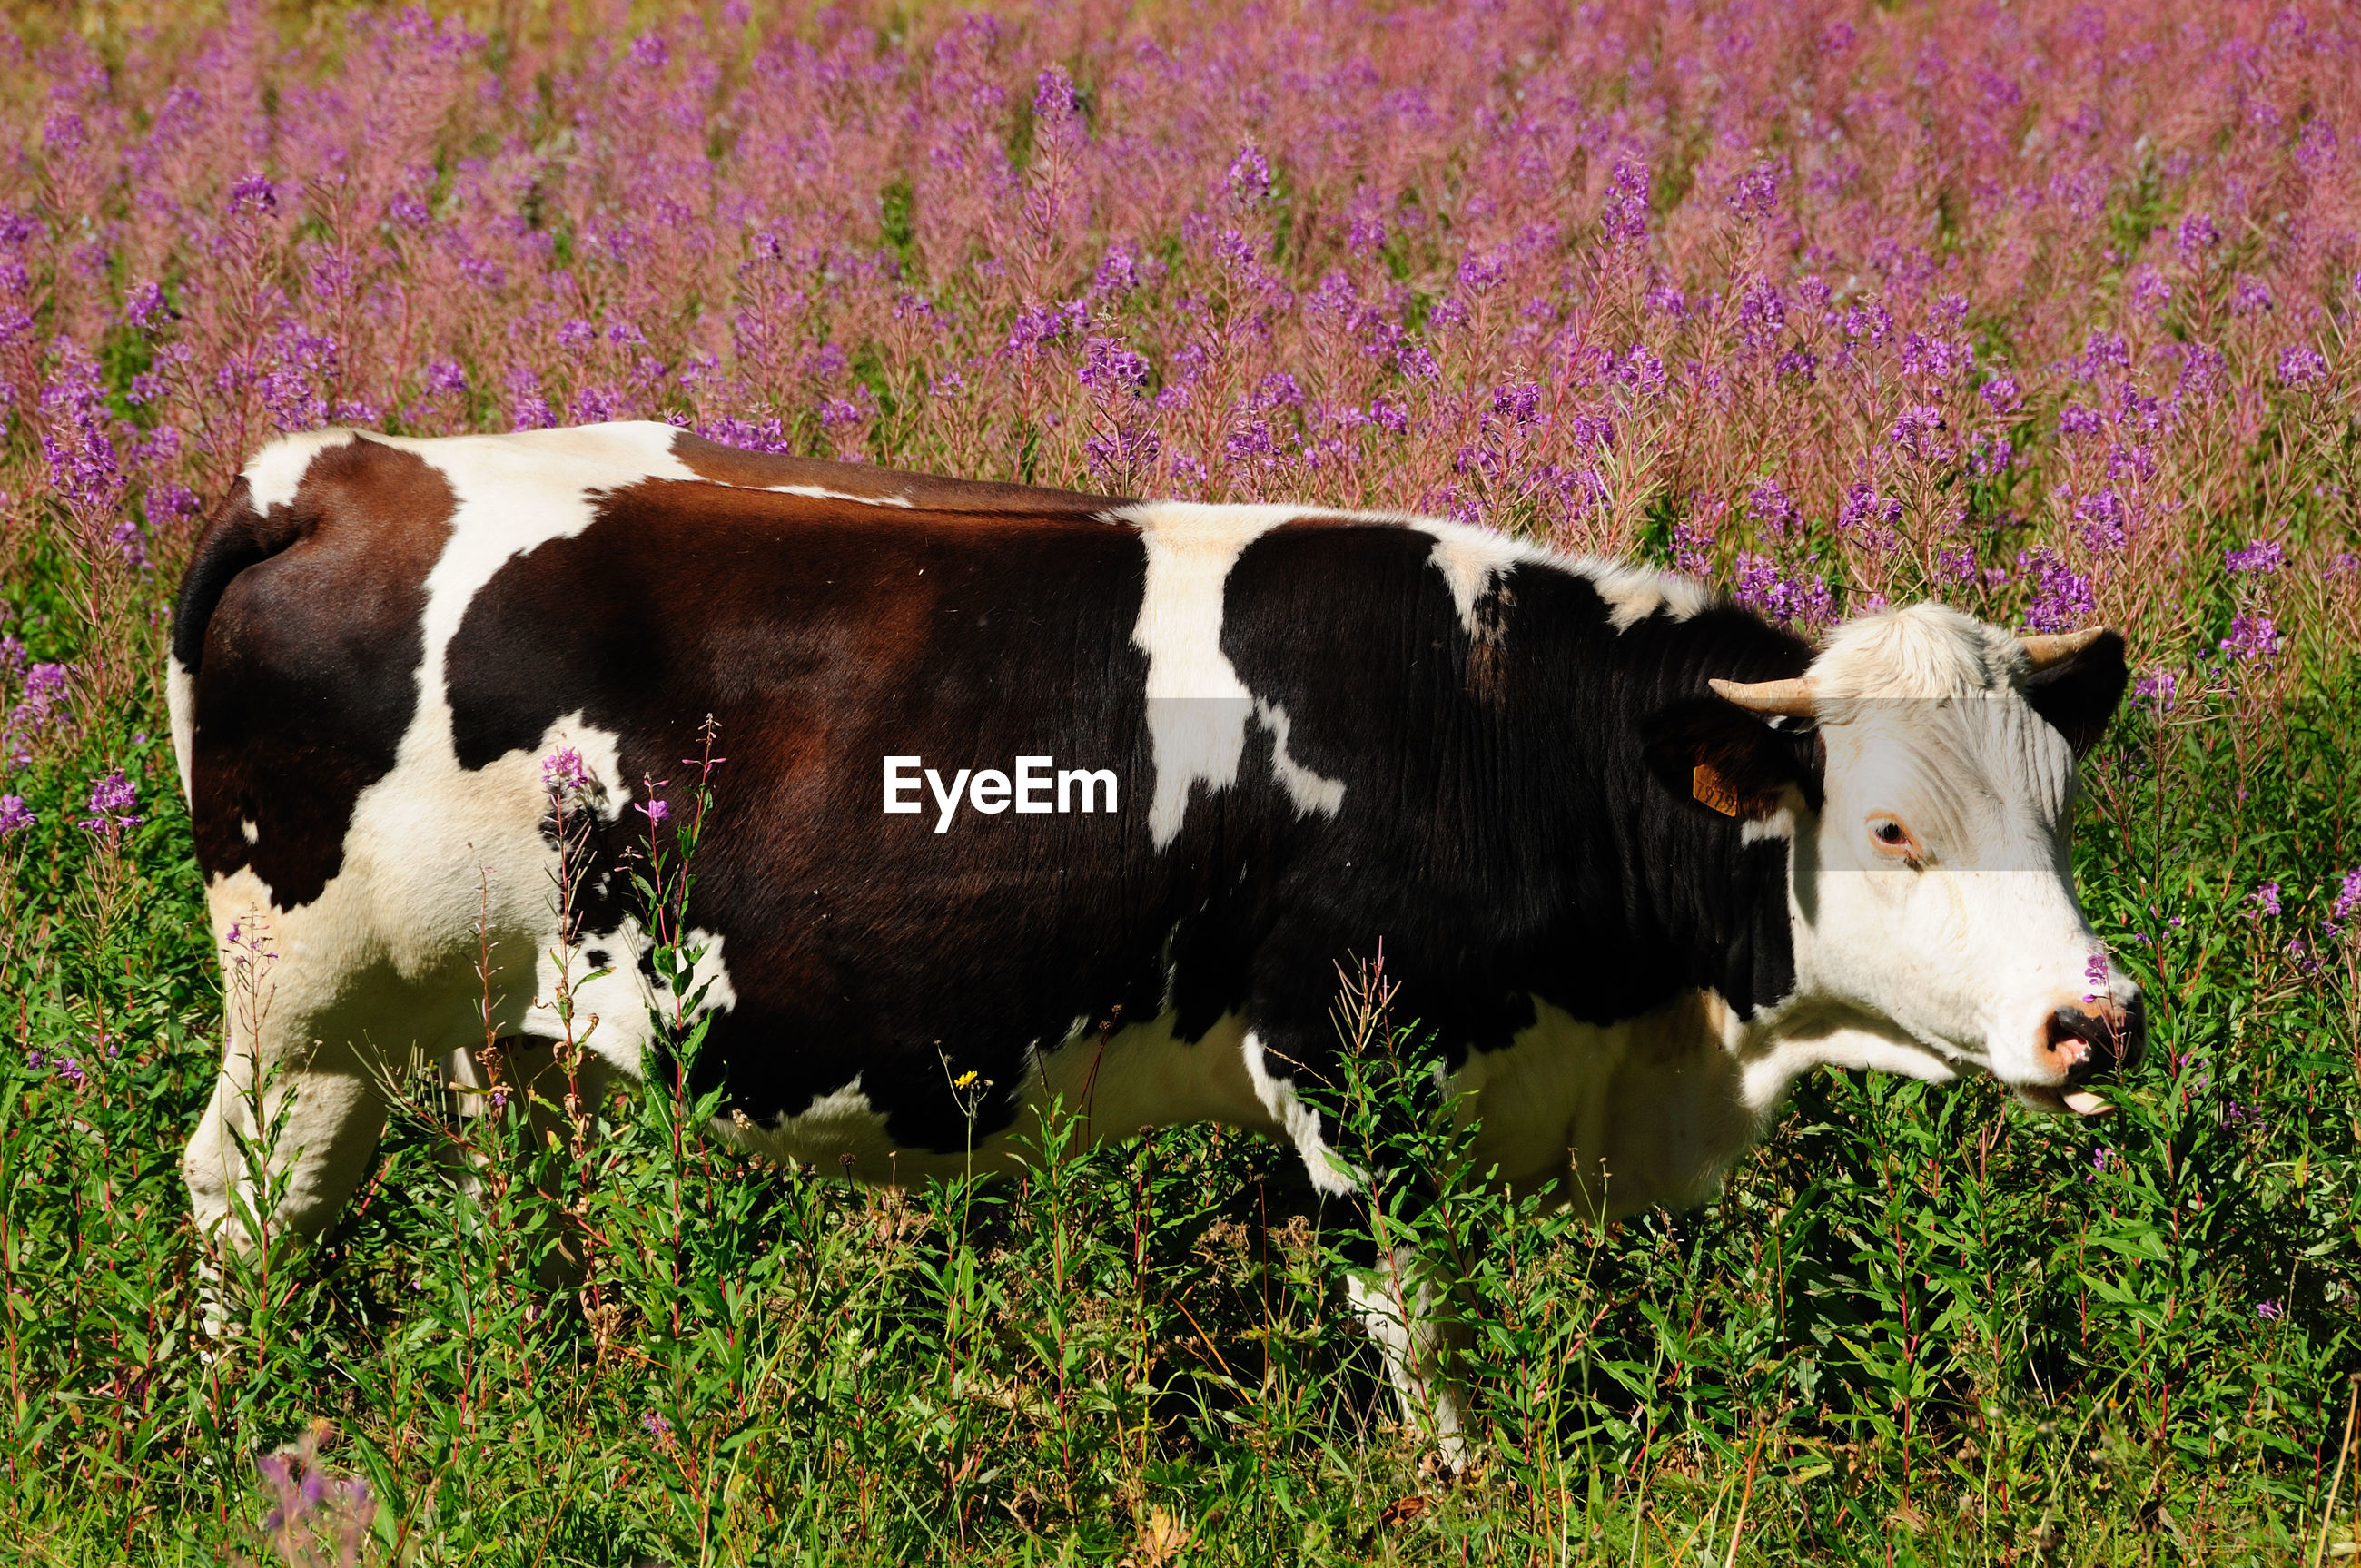 COW STANDING ON FIELD BY PLANTS